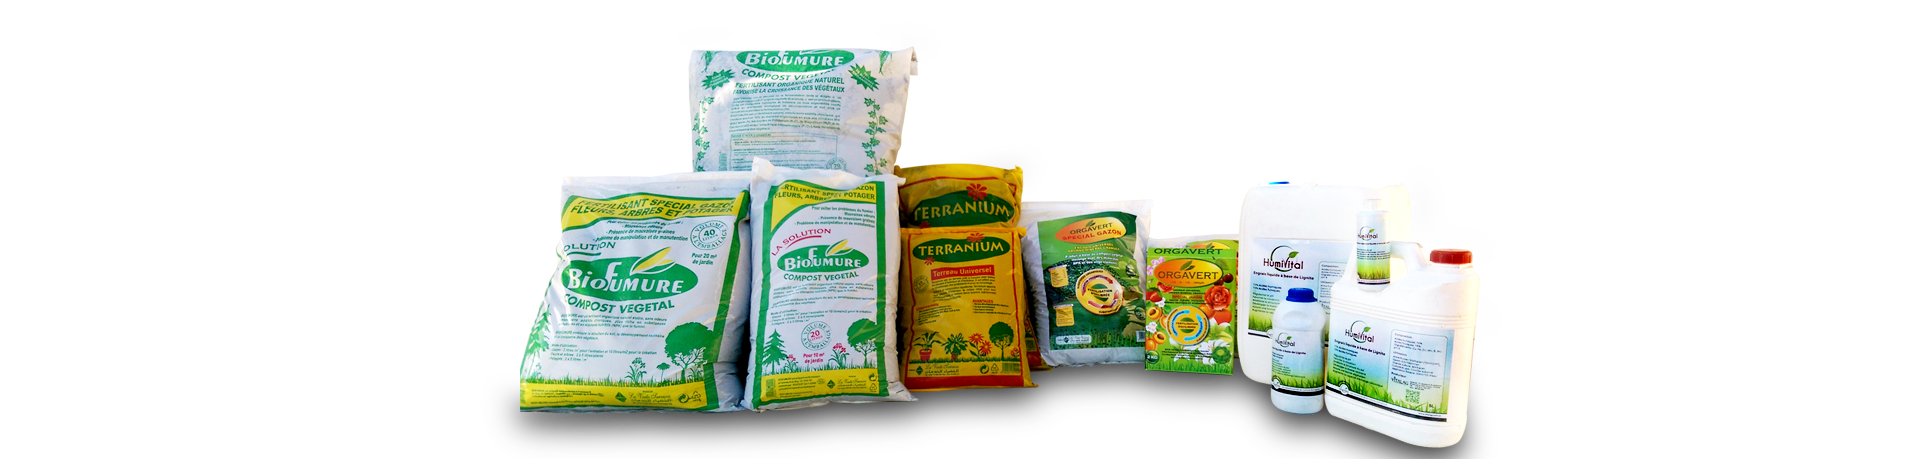 Fertilizer-products